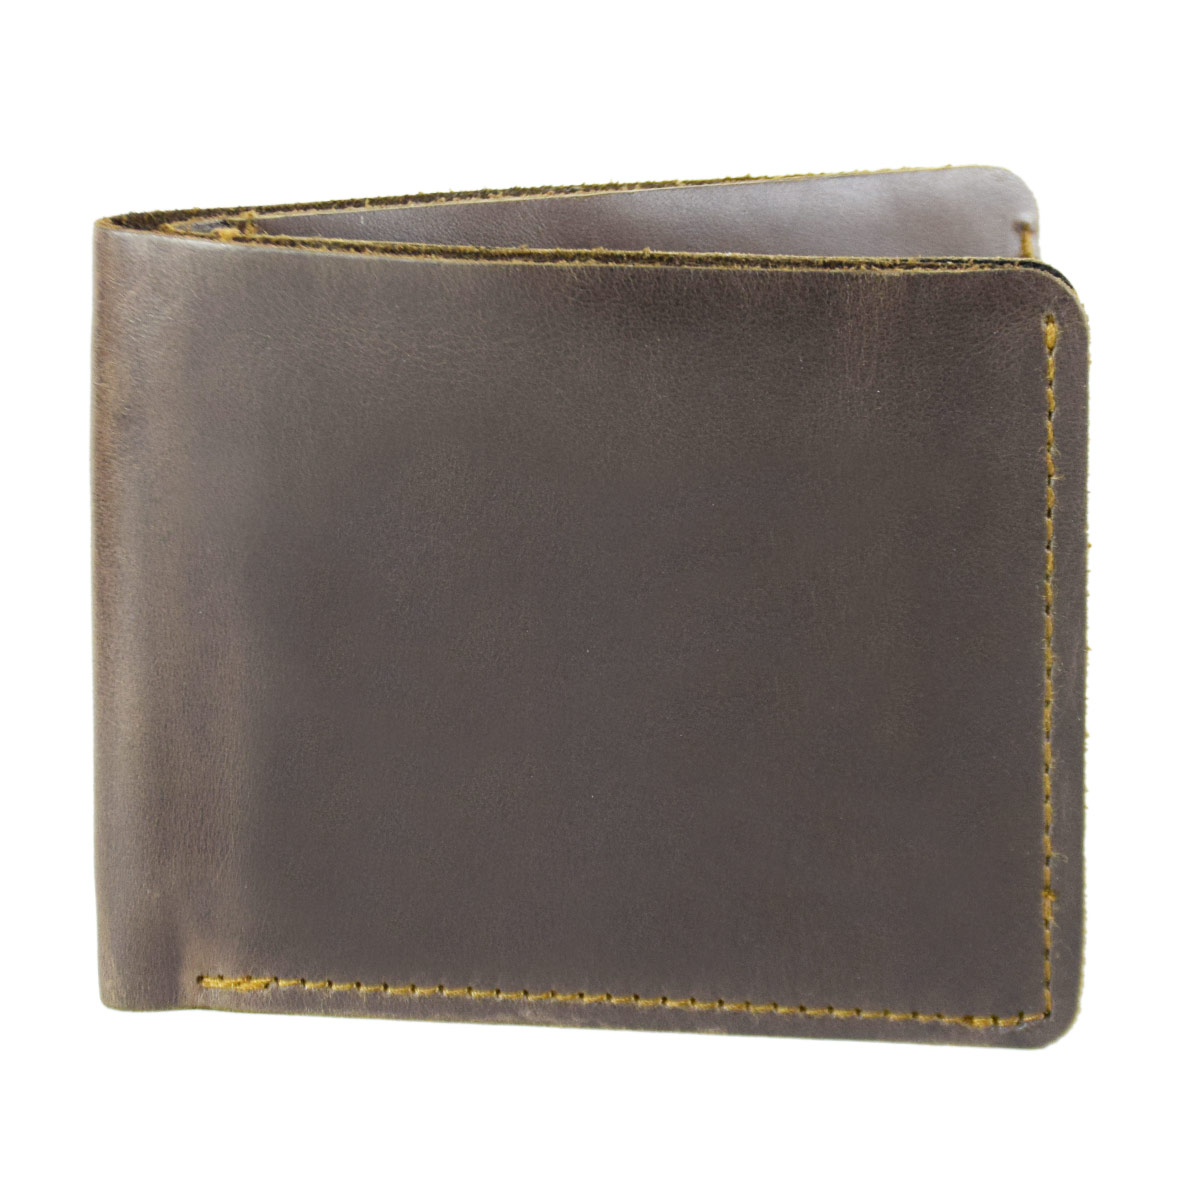 ANTIQUE BROWN WALLET WITH UNIQUE POCKETS